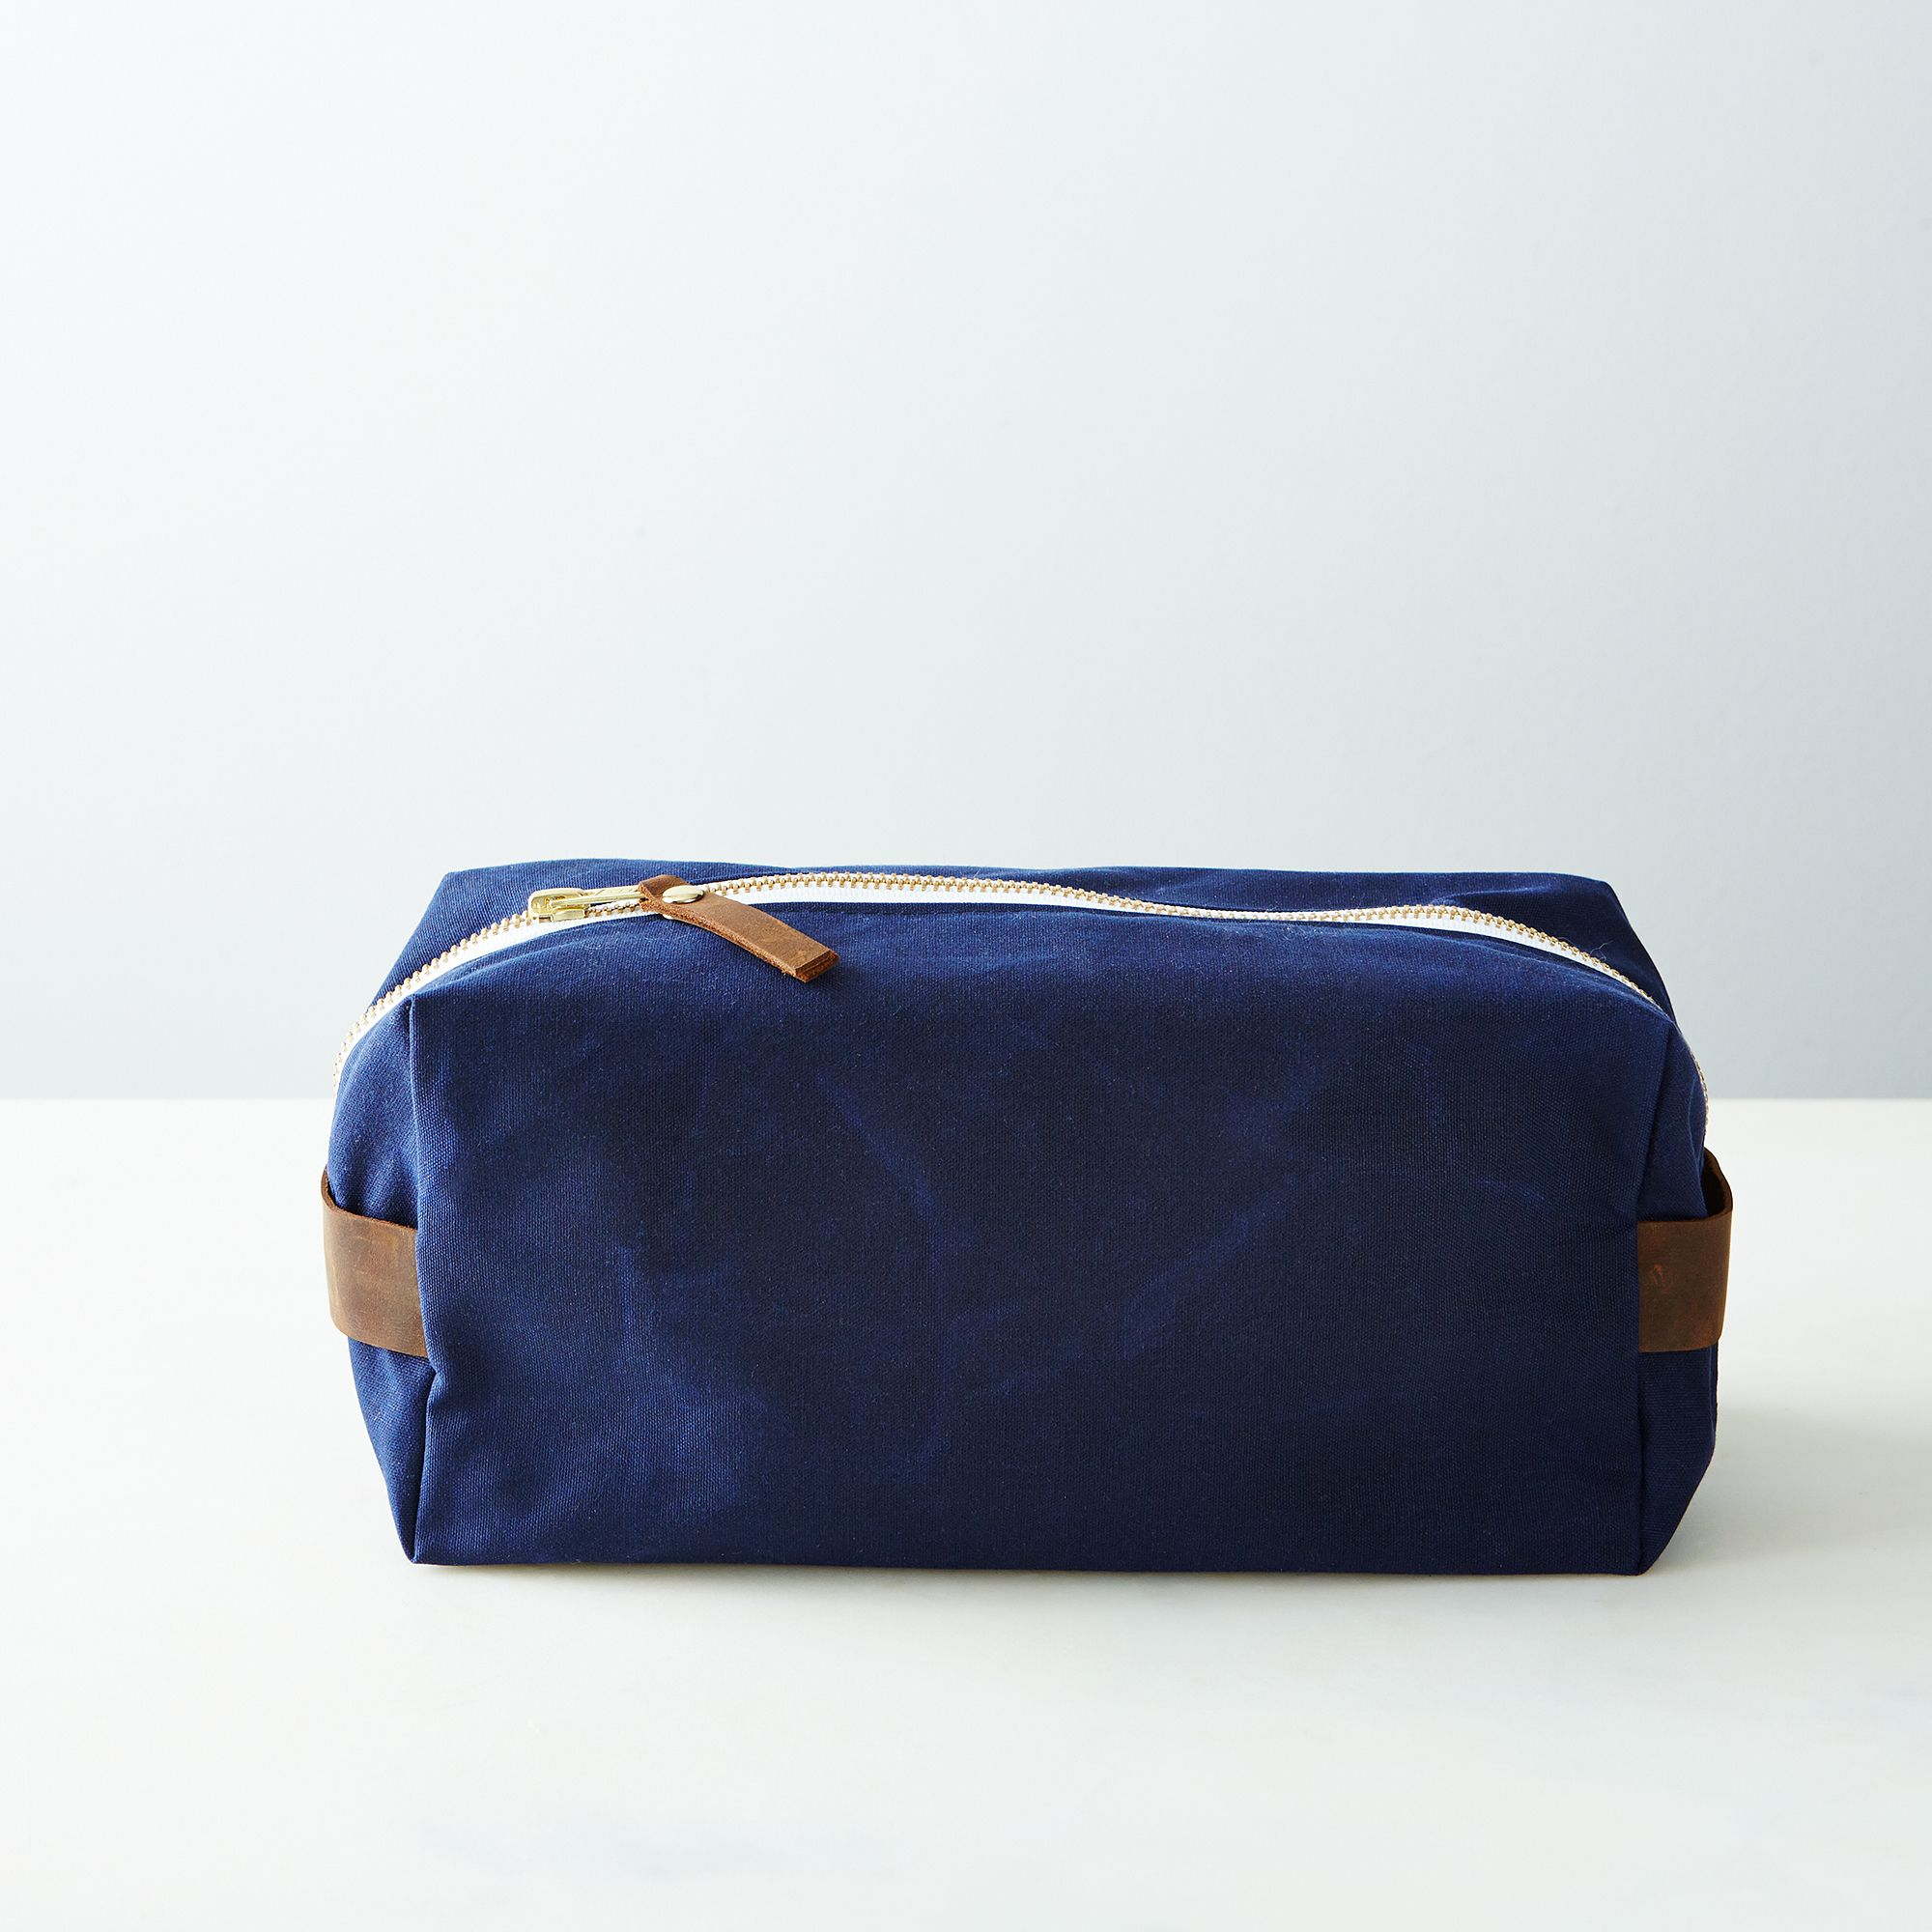 A6dc2ccc a0f6 11e5 a190 0ef7535729df  butter design lab waxed canvas toiletries pouch week navy provisions mark weinberg 15 08 14 0953 silo